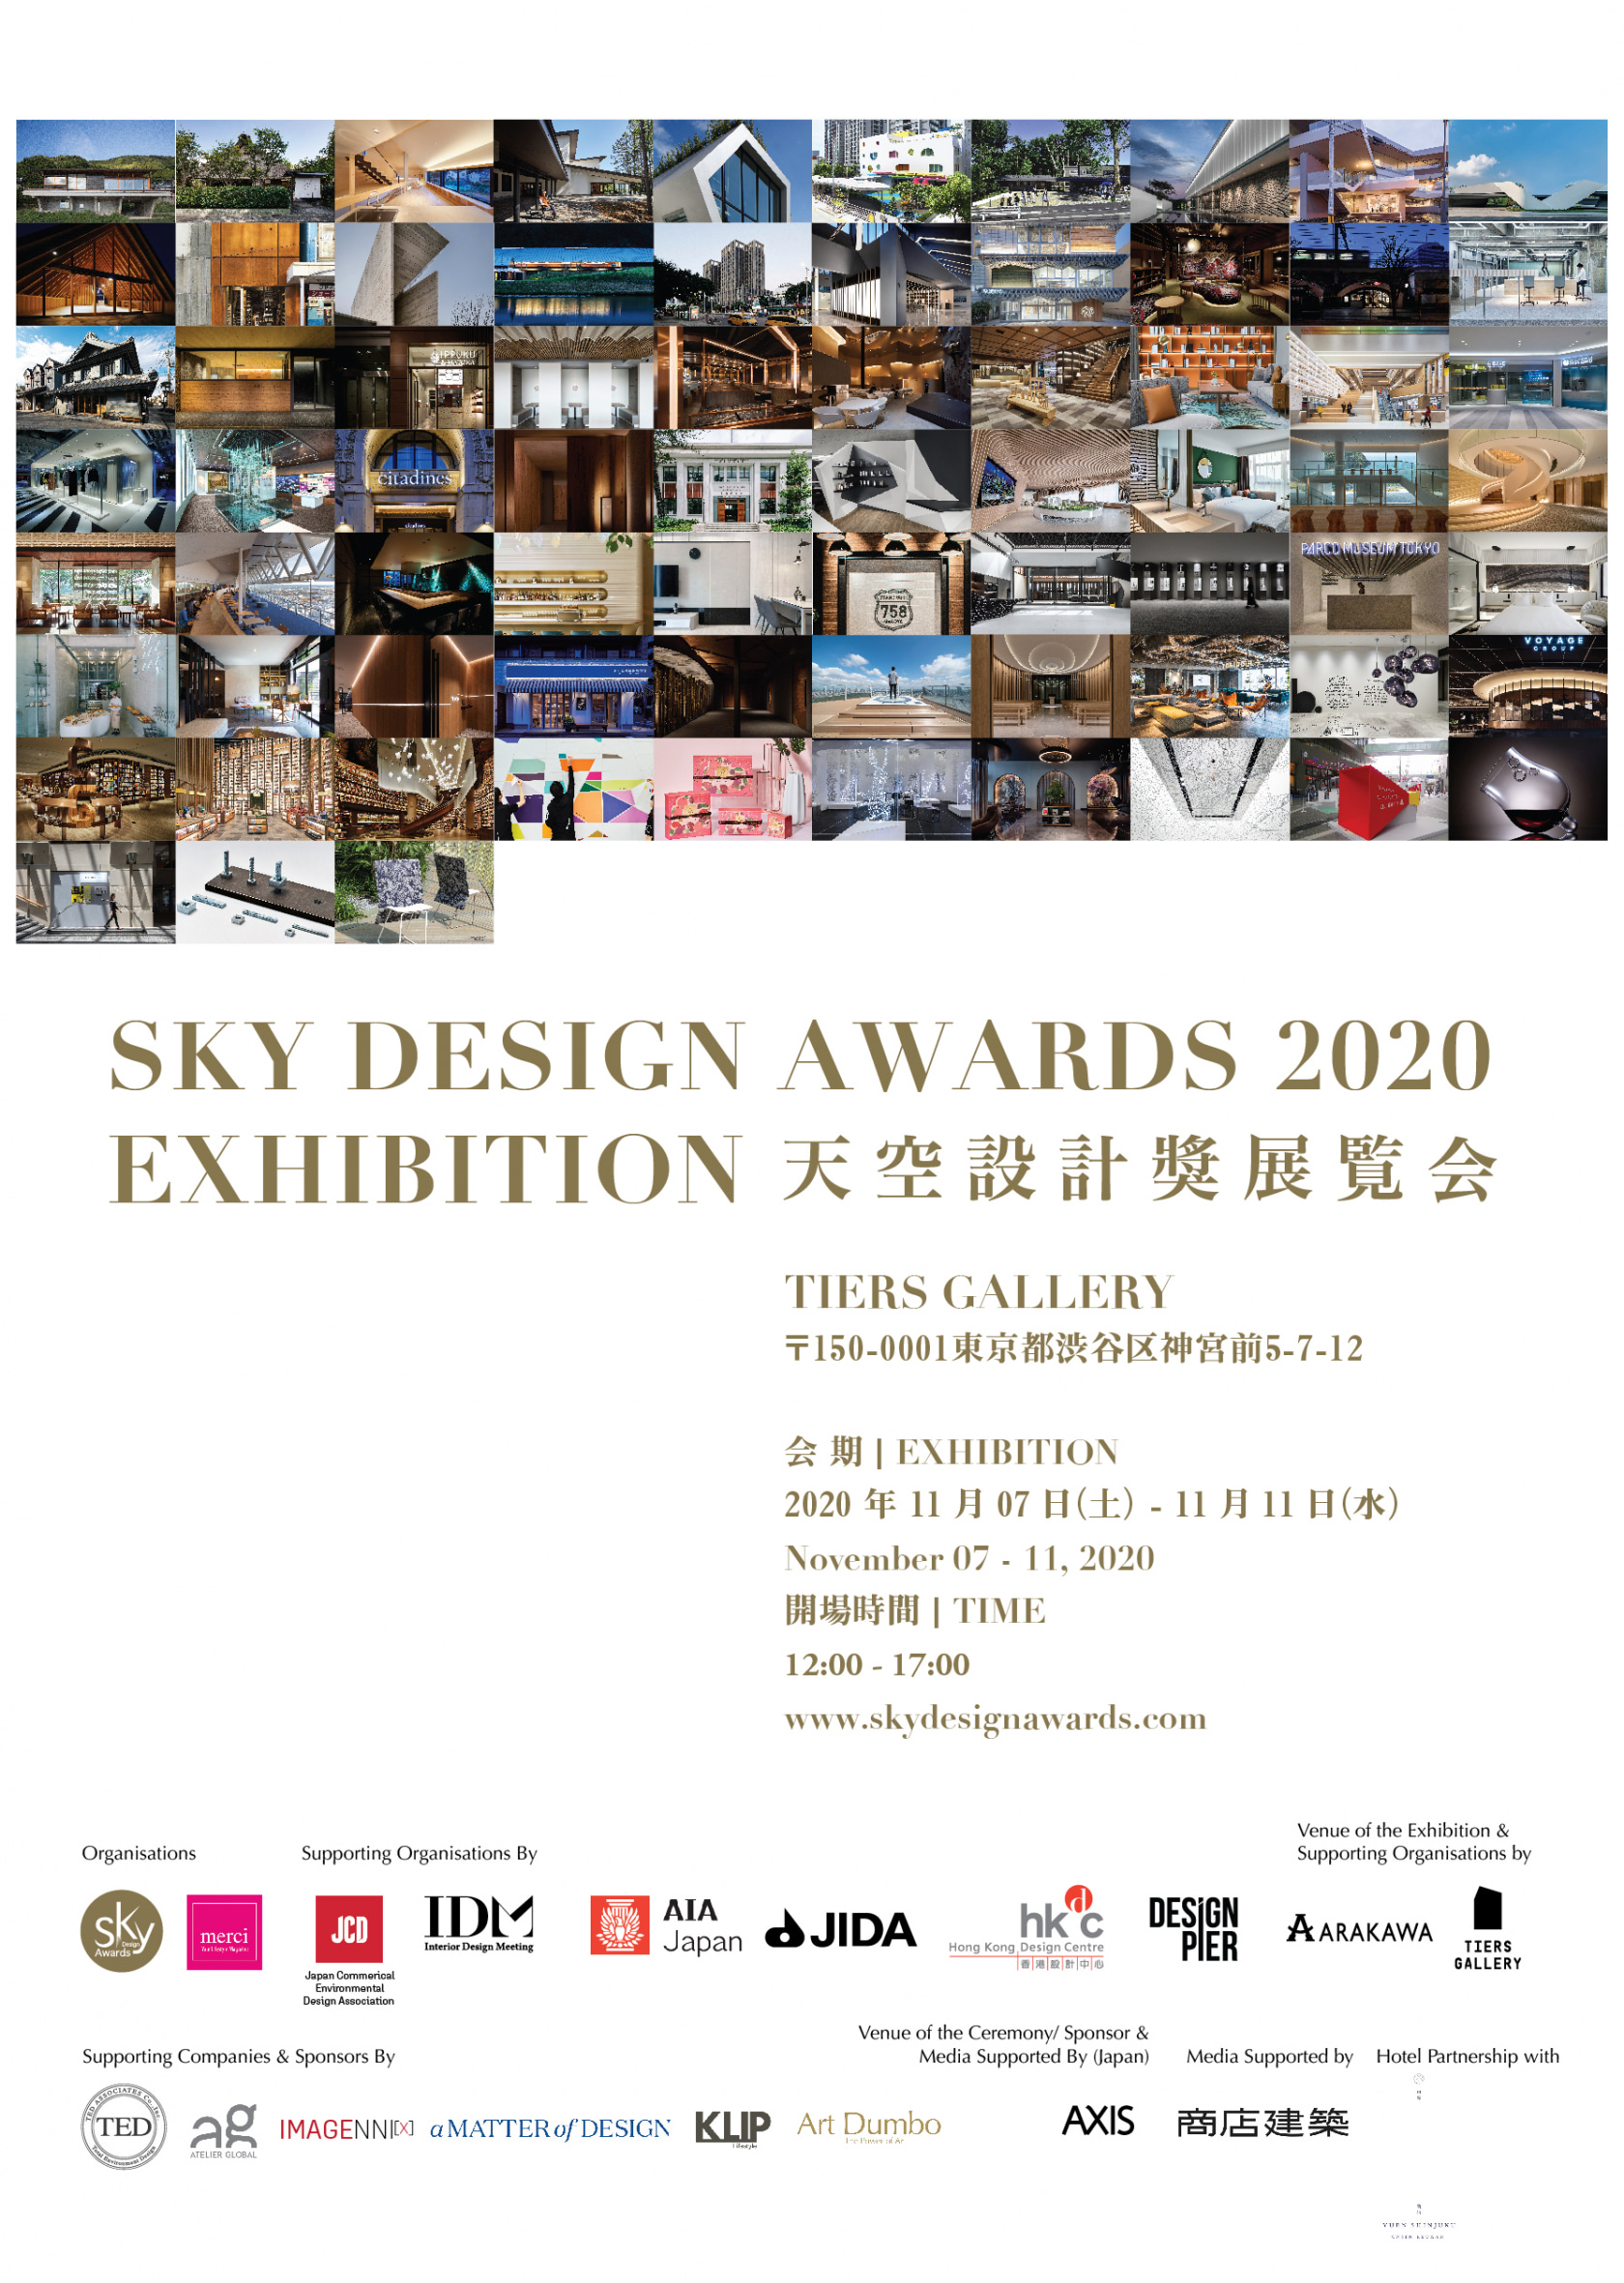 Sky Design Awards 2020 Exhibition